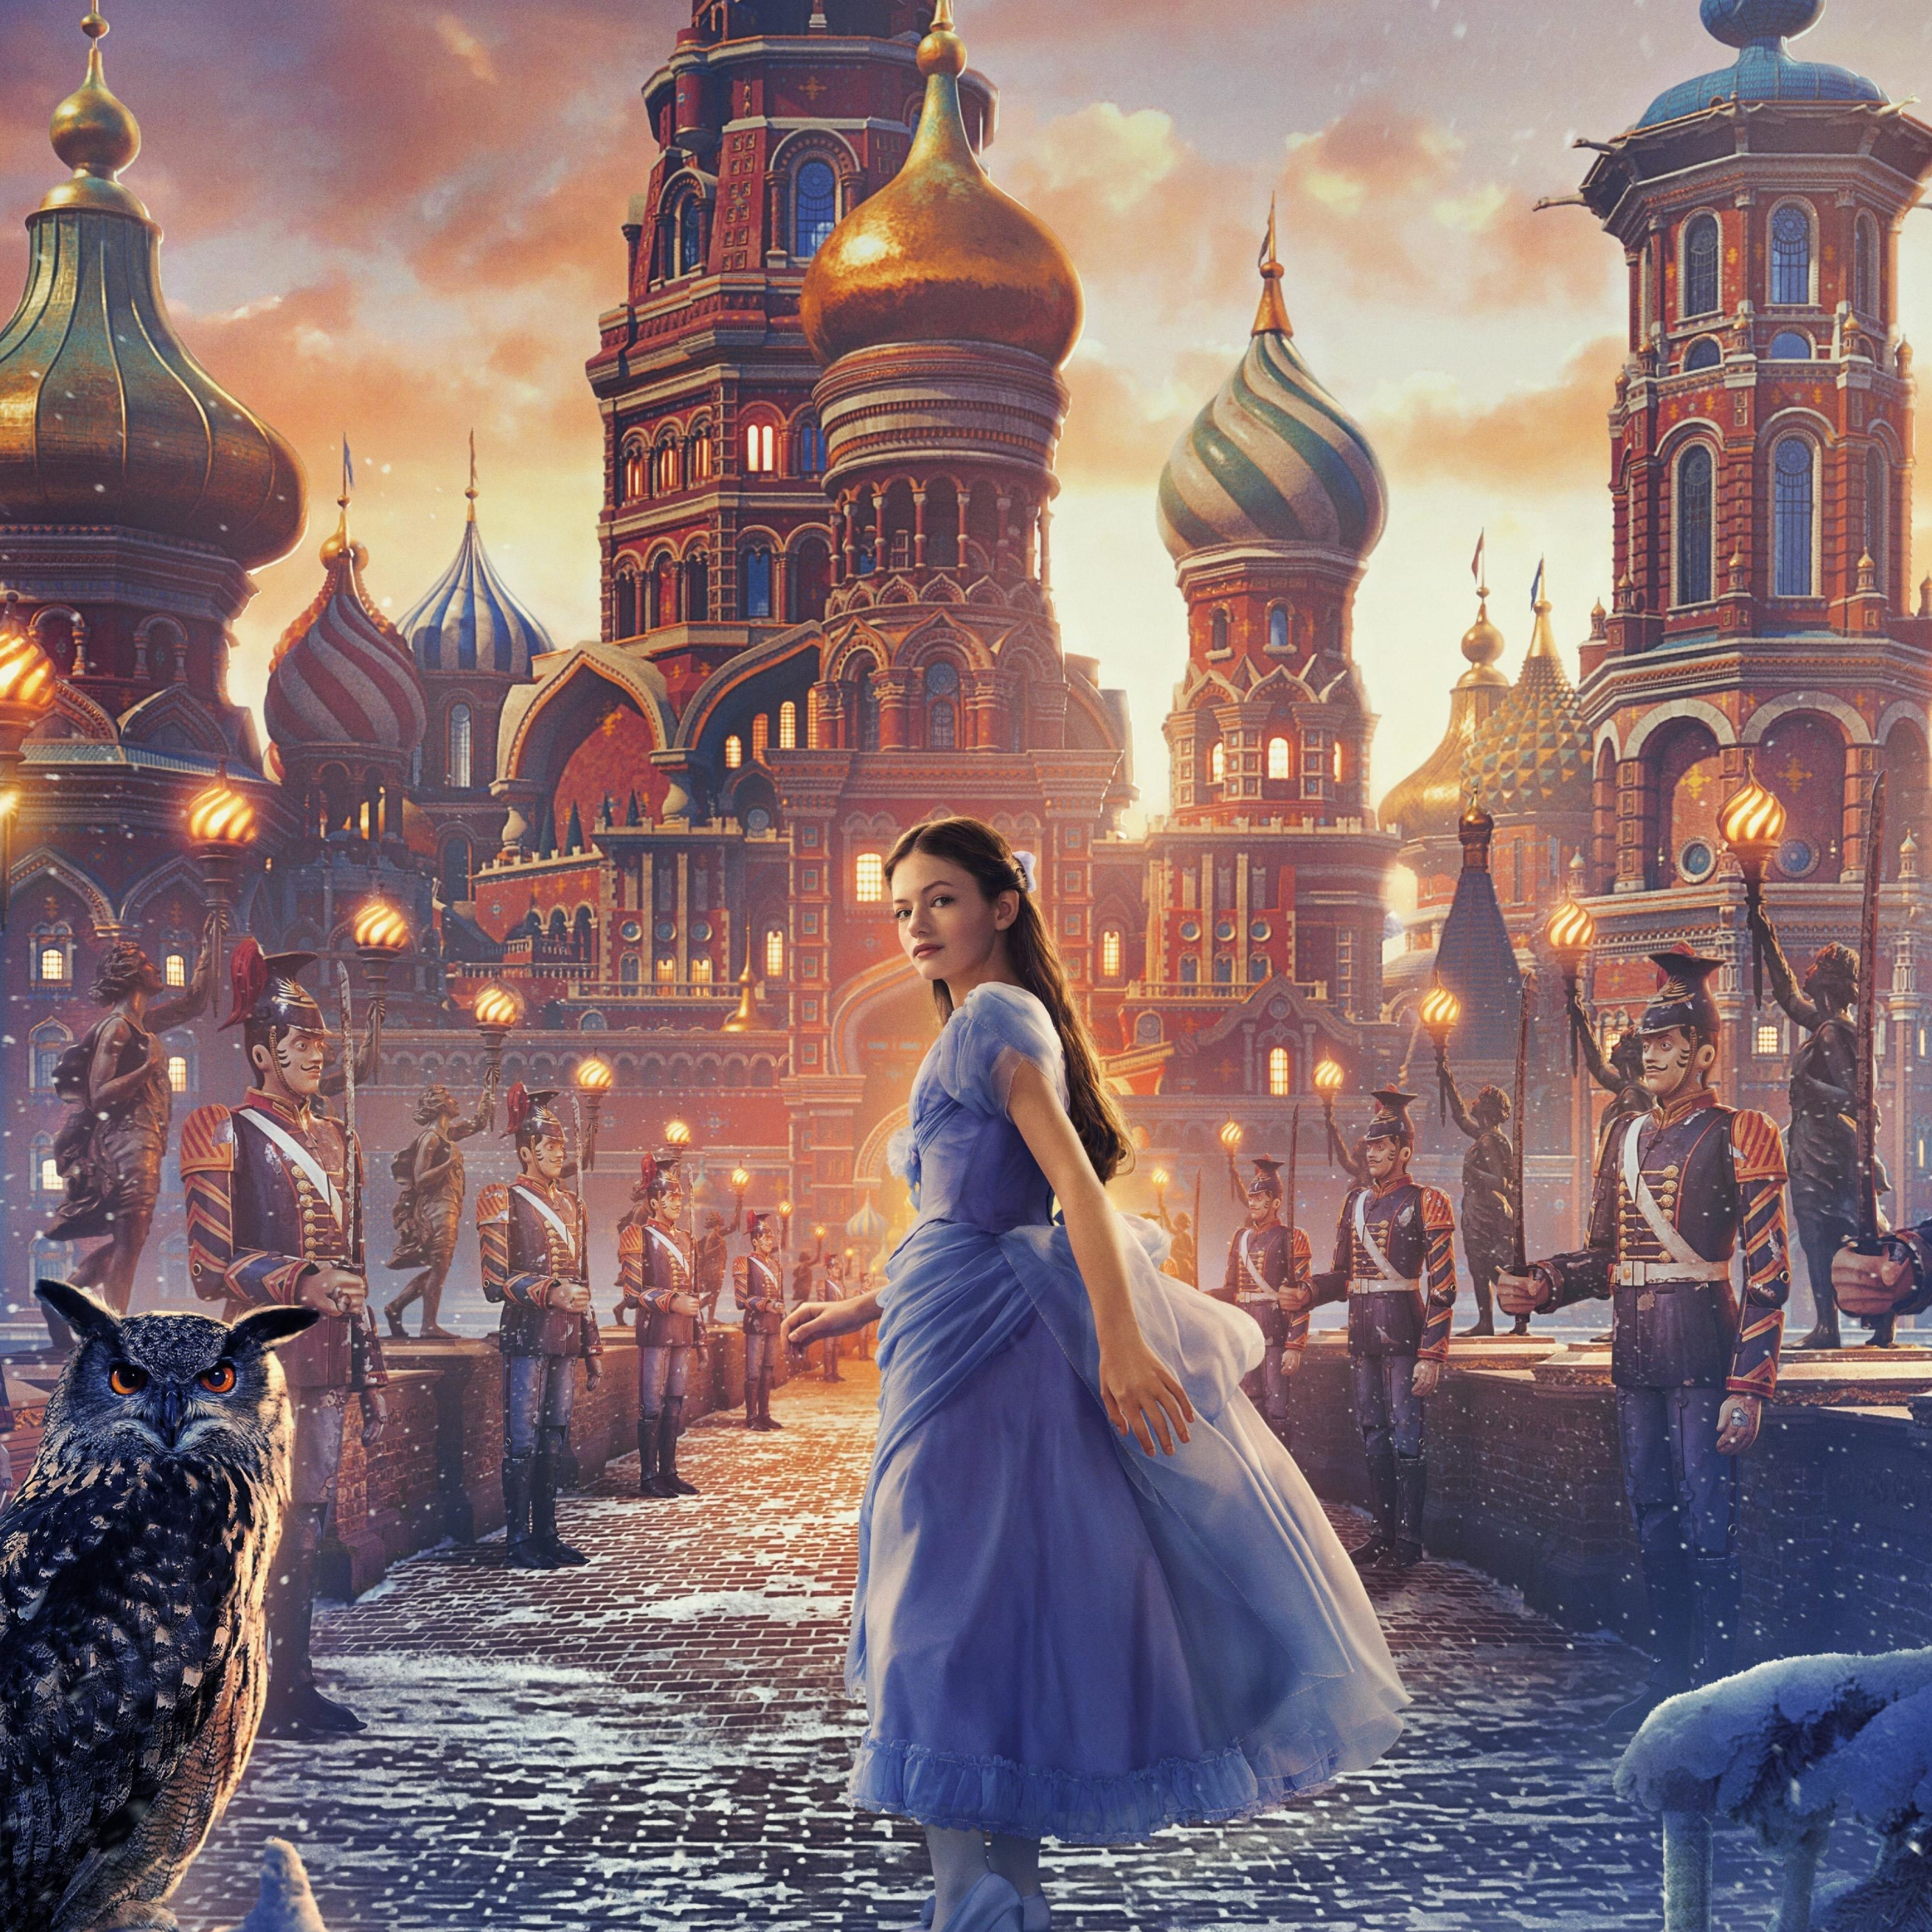 Download Mackenzie Foy The Nutcracker And The Four Realms 2018 2780x2780